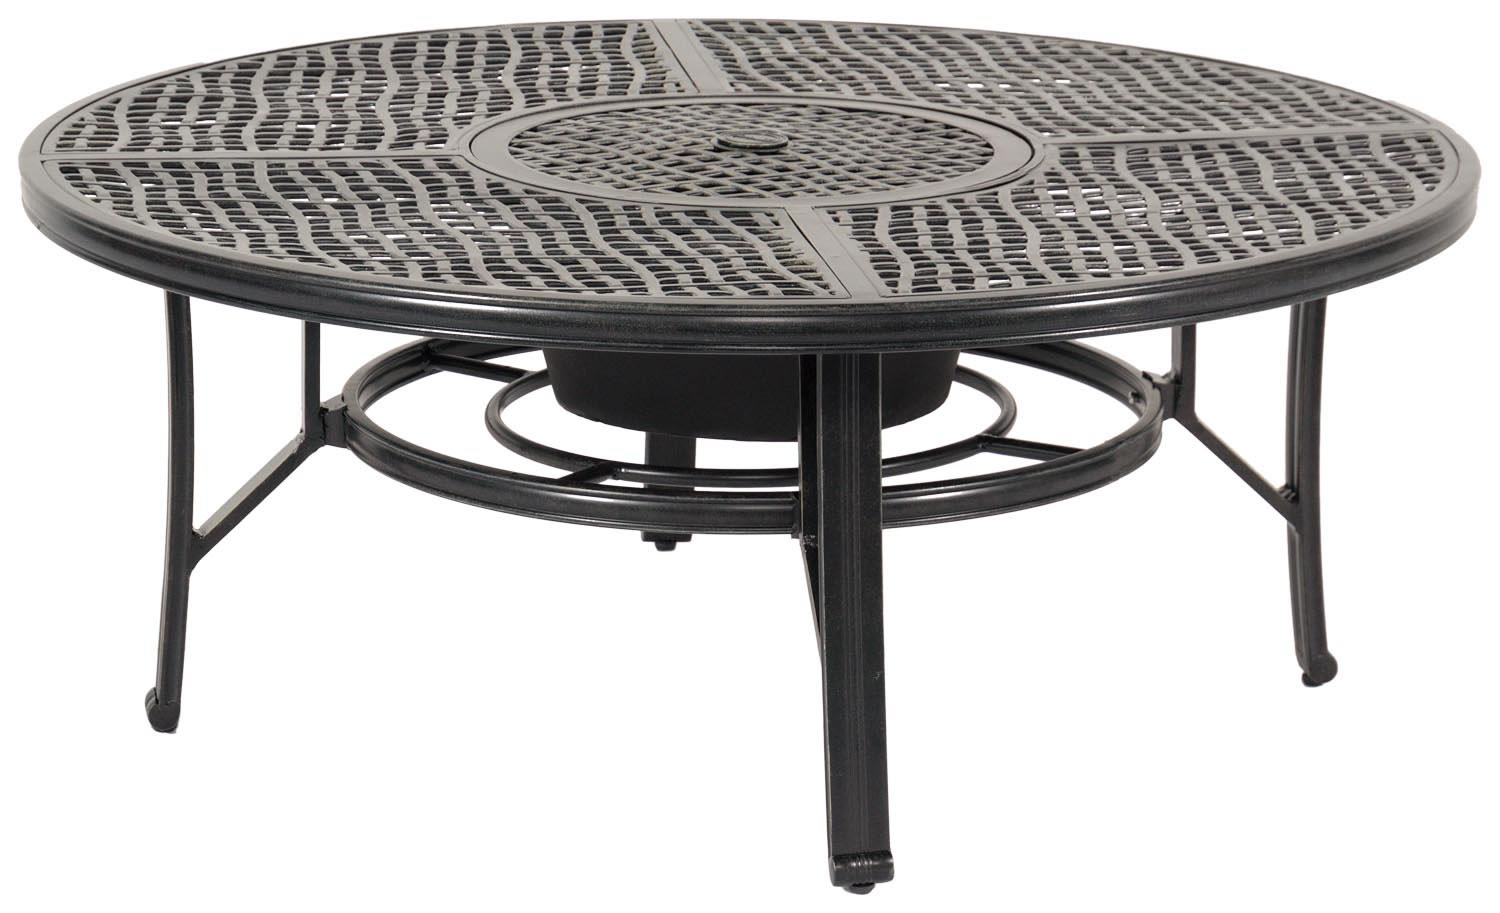 Jamie Oliver Classic 4 Seater Fire Pit Set Bronze  : jamie oliver fire pit table from www.garden4less.co.uk size 1500 x 913 jpeg 147kB